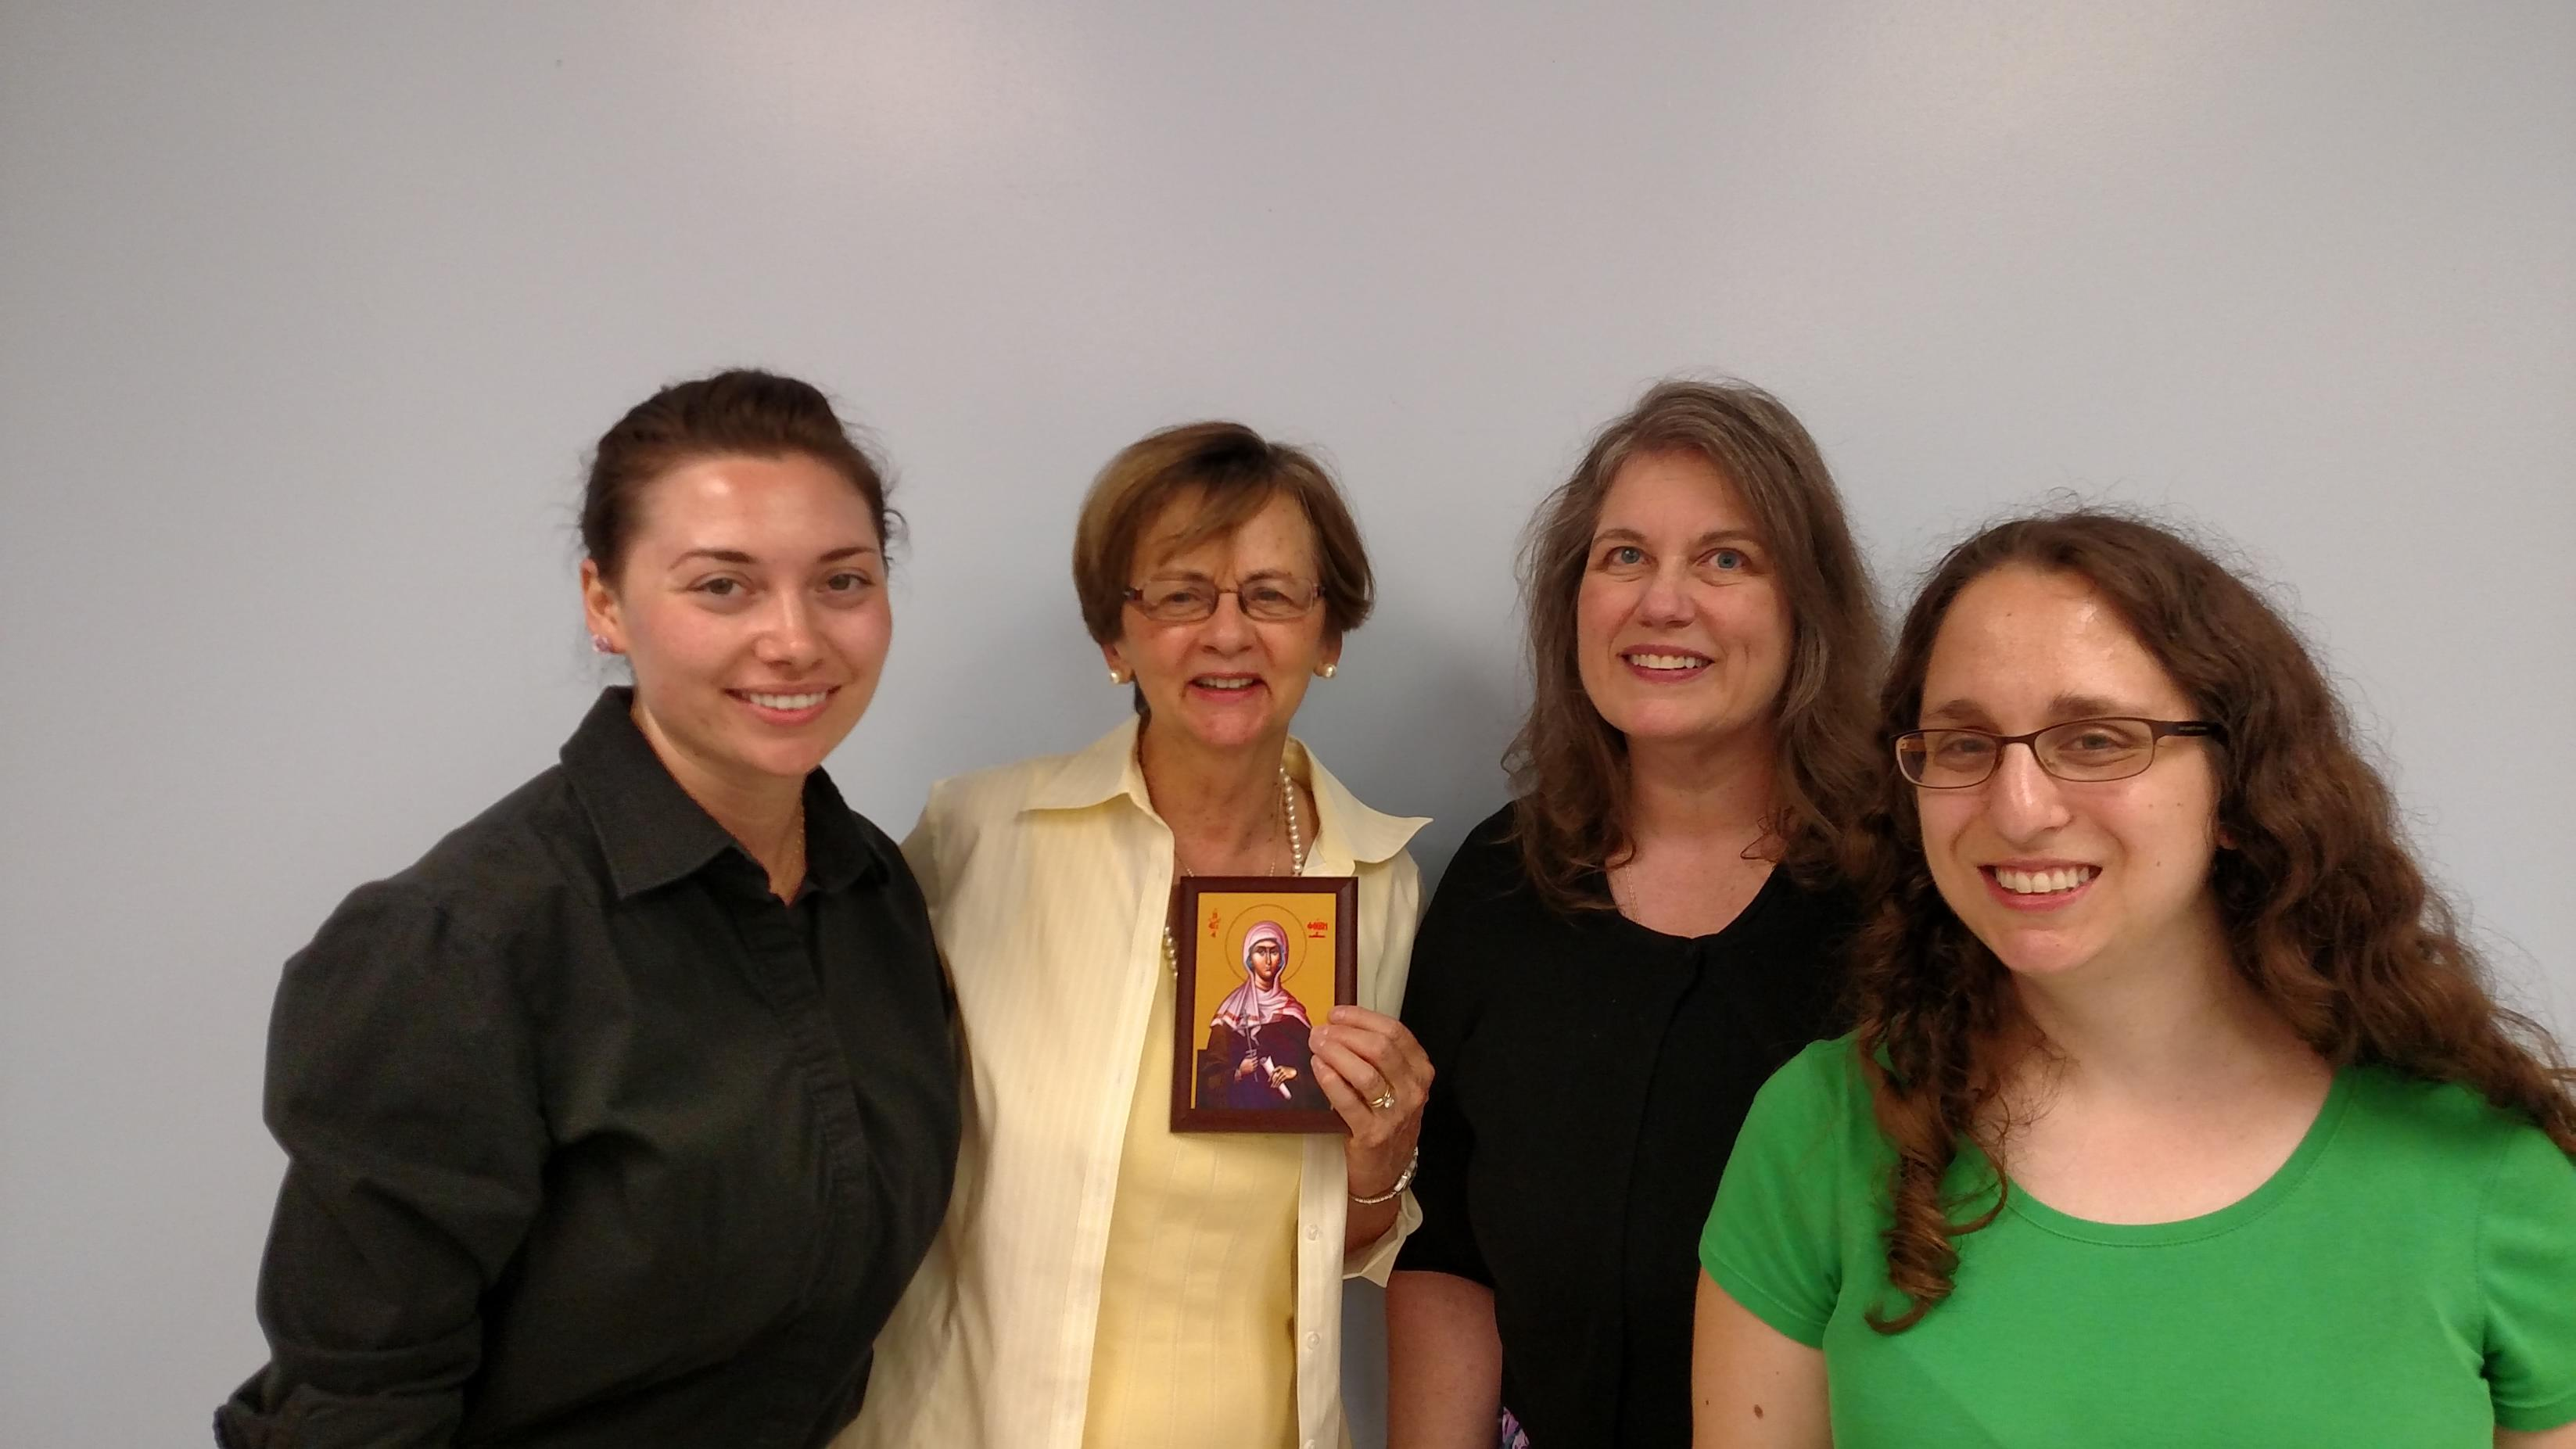 Speakers at St. Phoebe Conference Recap Event (L to R): Dionne Manos, Marilyn Rouvelas, Matushka Alexandra Safchuk, and Christina Jatras.